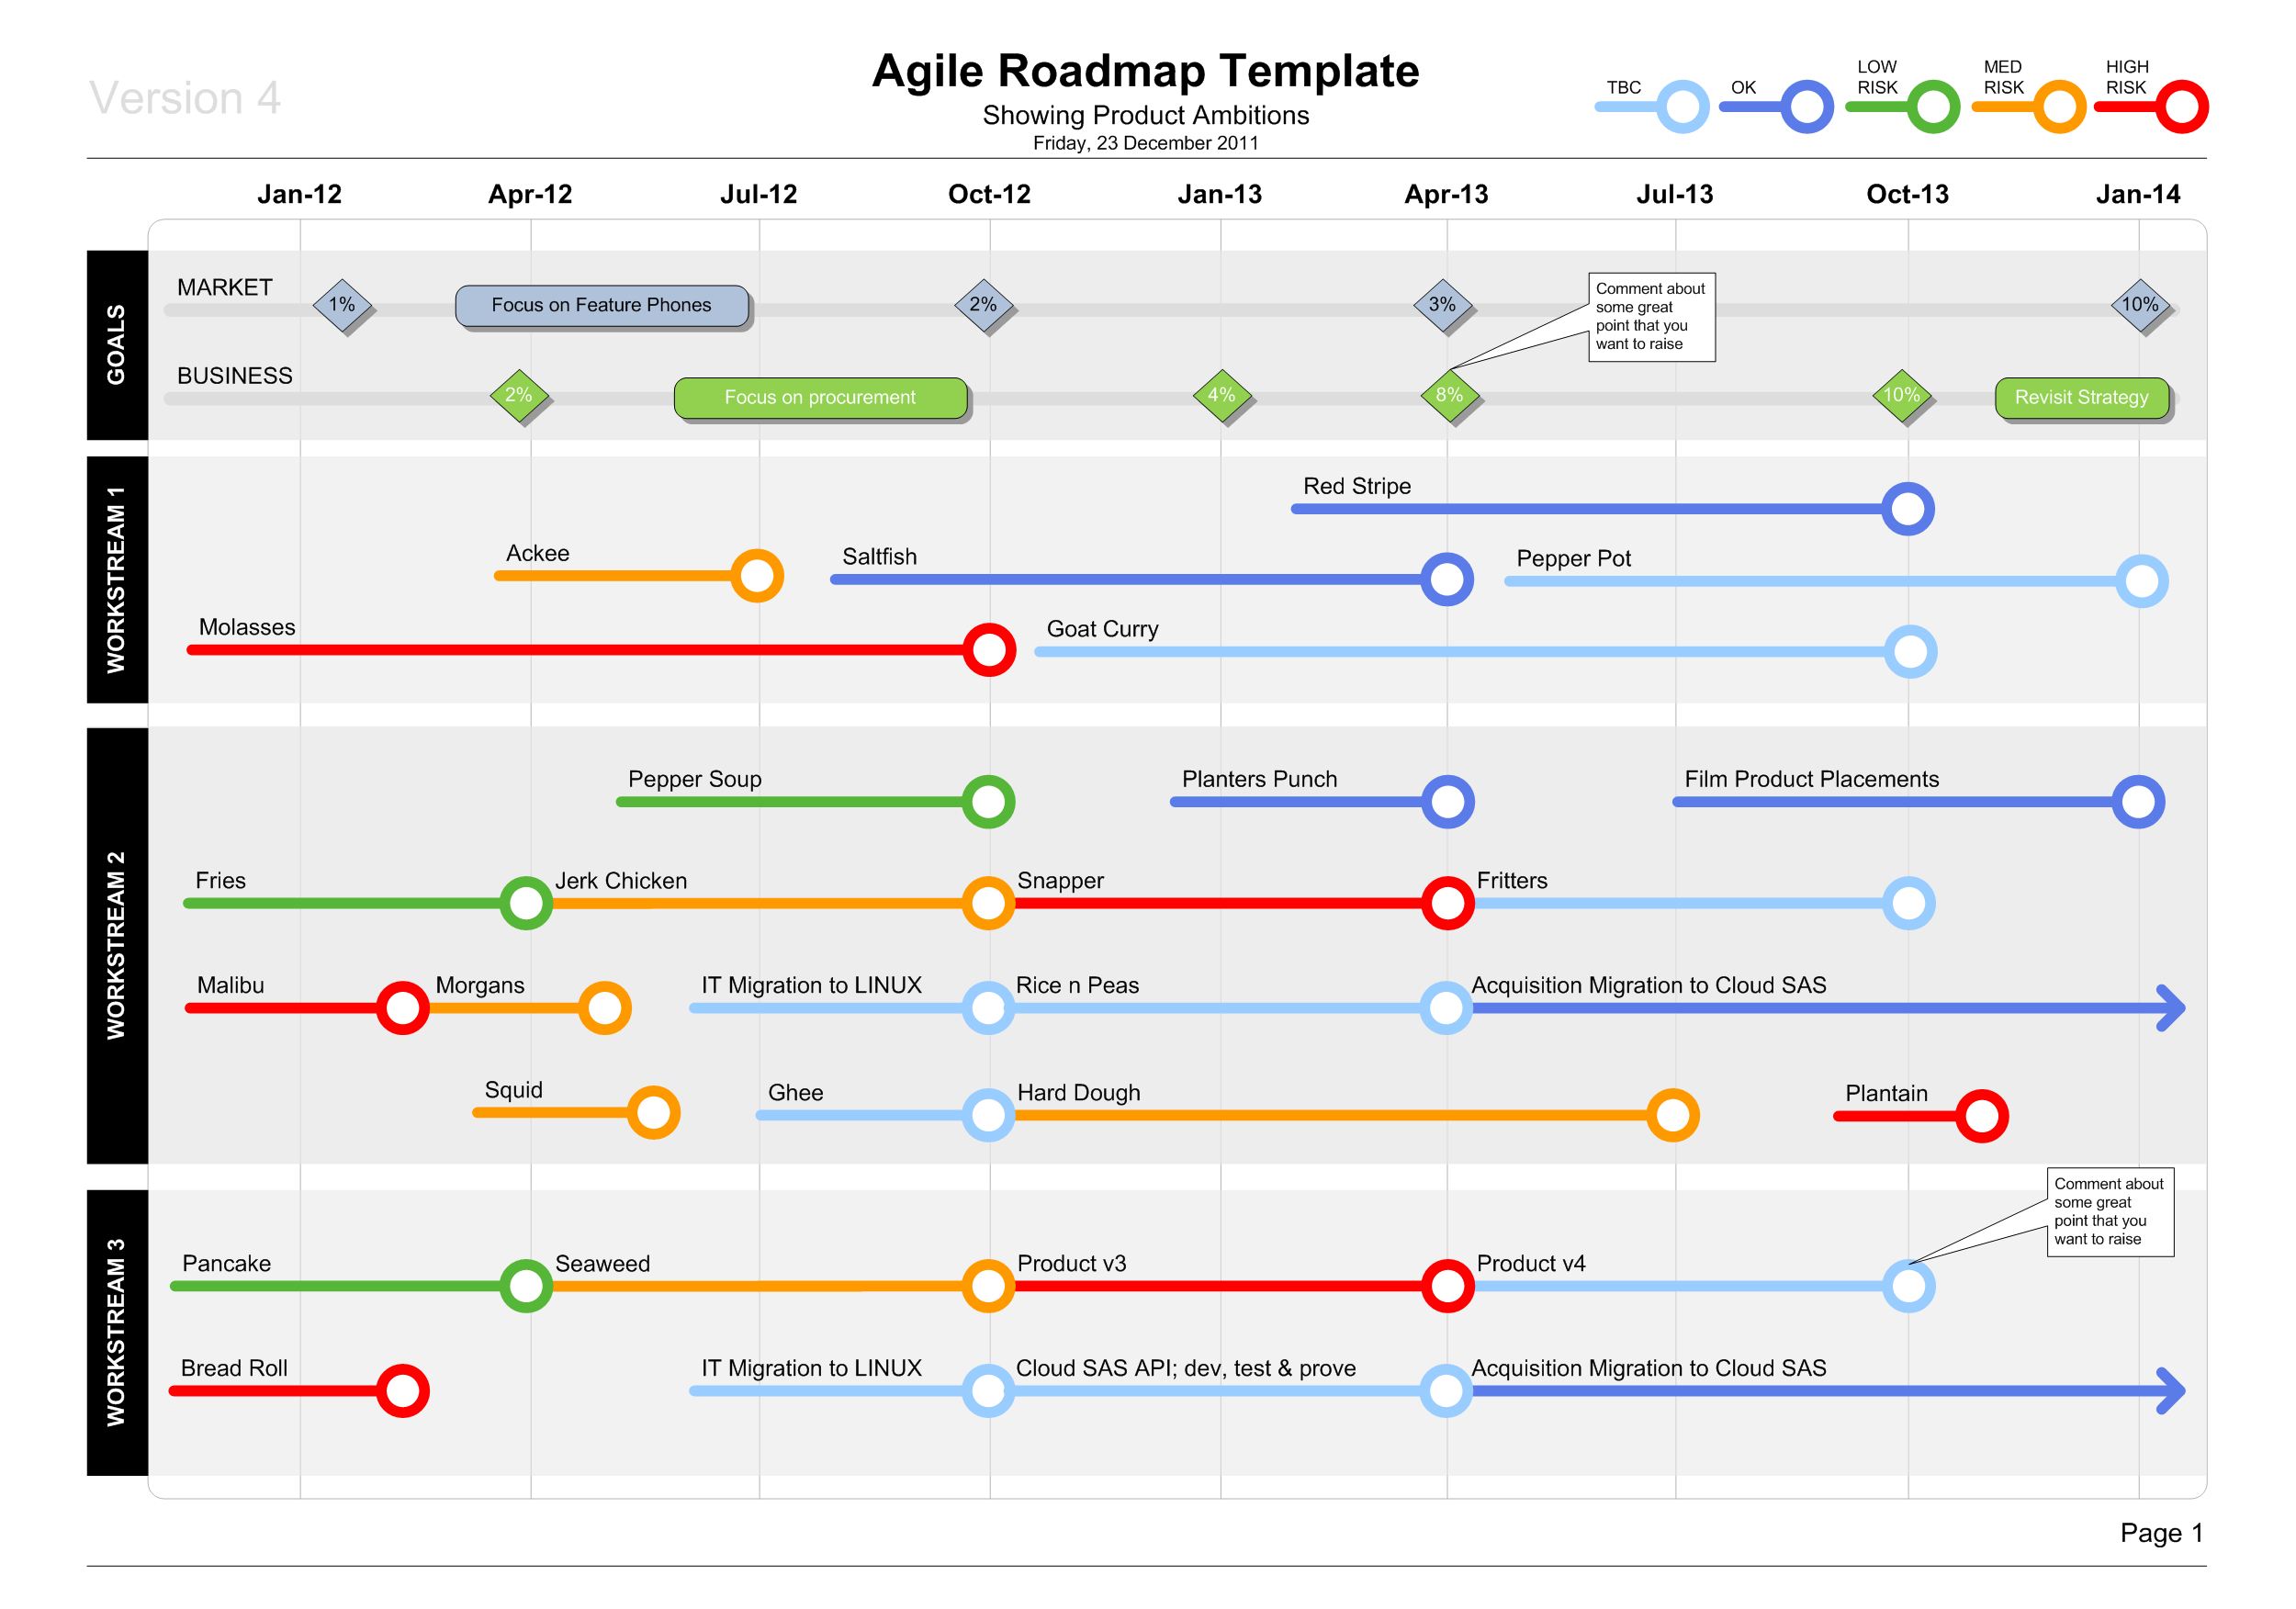 Agile Roadmap Template Visio Powerpointslides Pinterest - Lean roadmap template